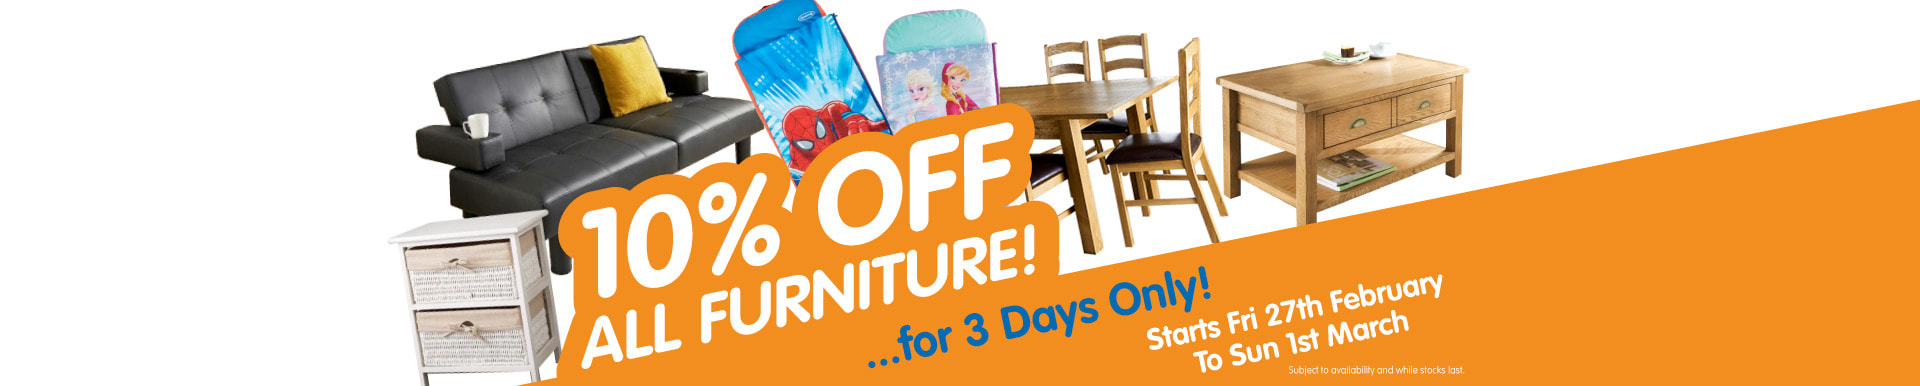 10% Off ALL Furniture and Mattresses for 3 days only. Starting Friday 27th February to Sunday 1st March.